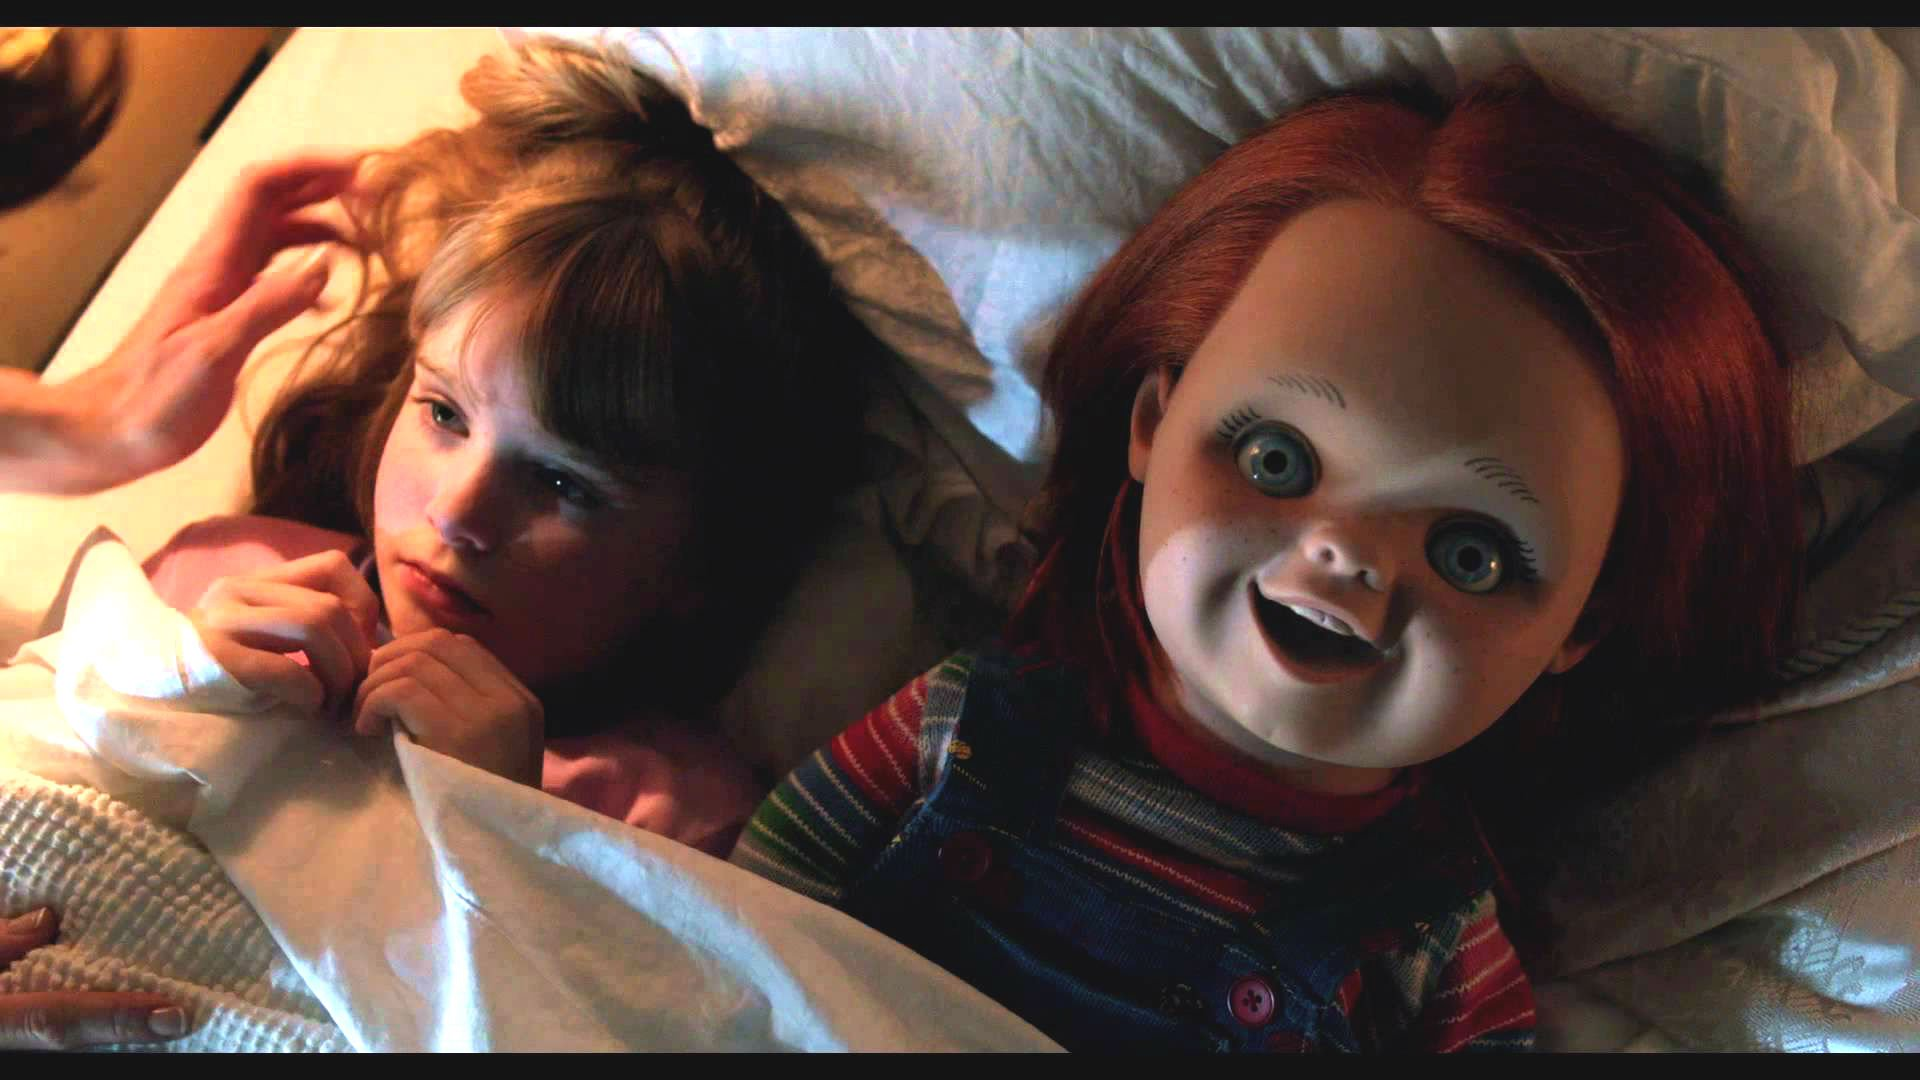 CHILDS-PLAY-chucky-dark-horror-creepy-scary-1920x1080-UP-wallpaper-wpc9003490